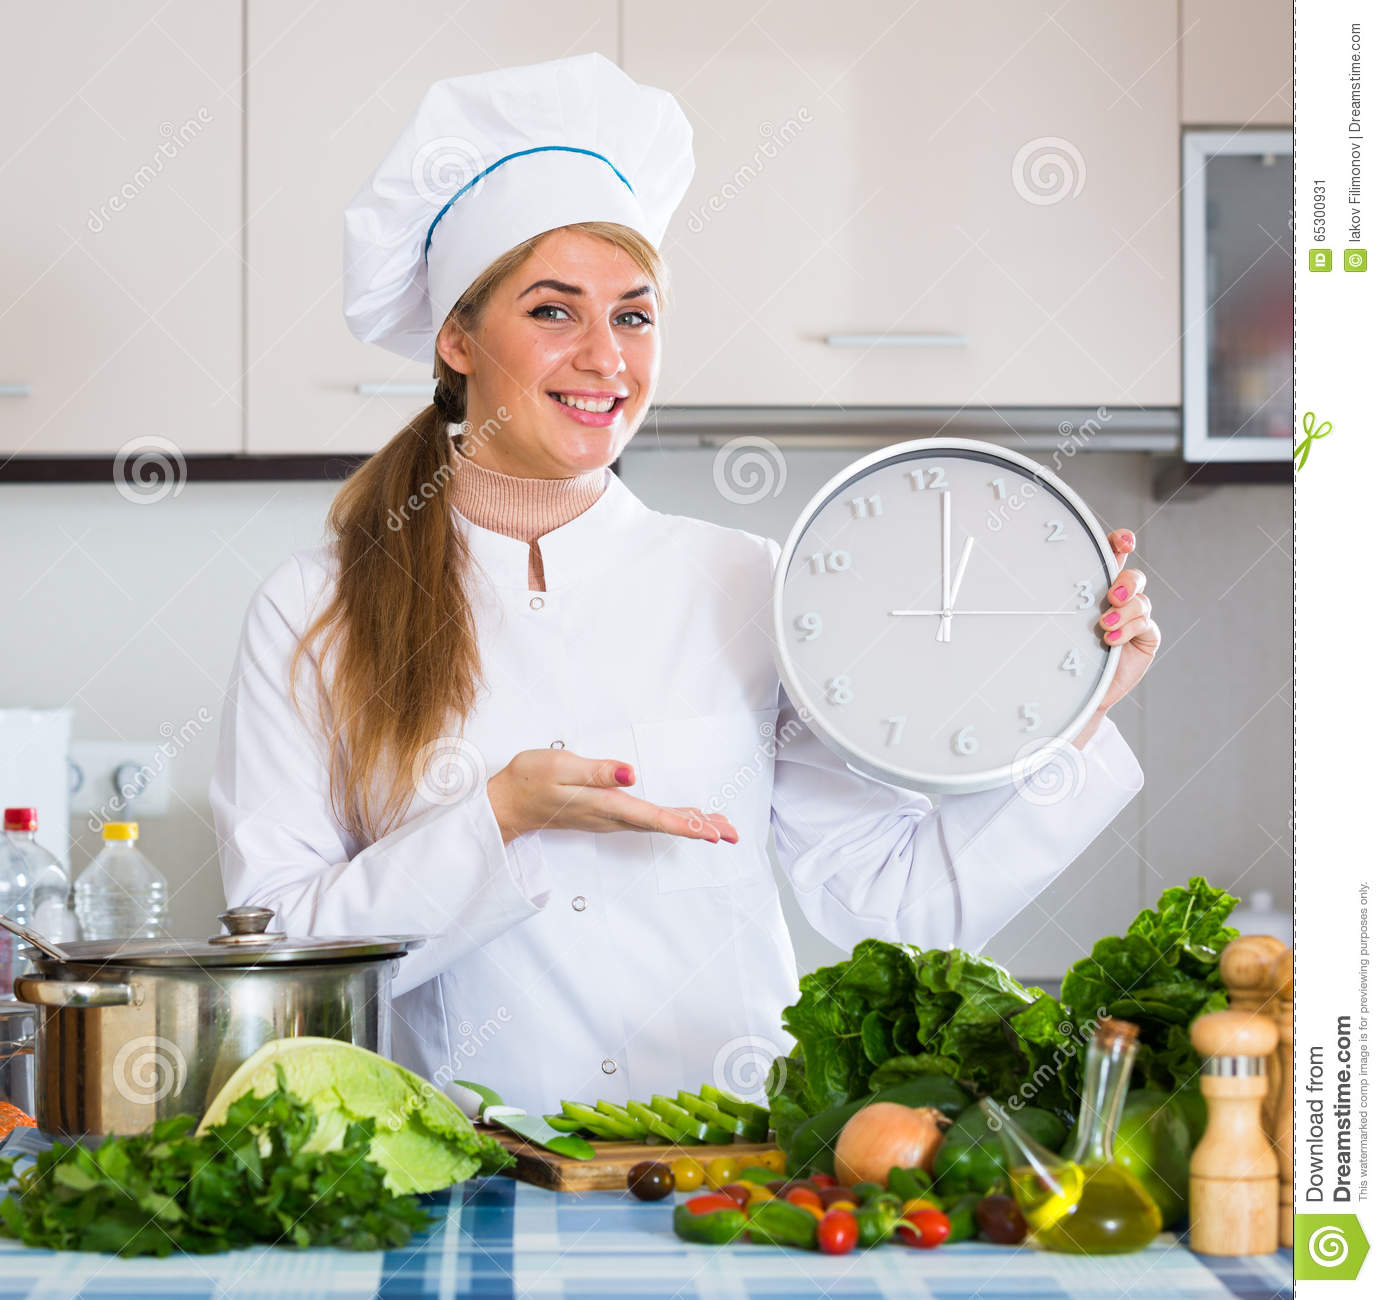 girl in chef uniform